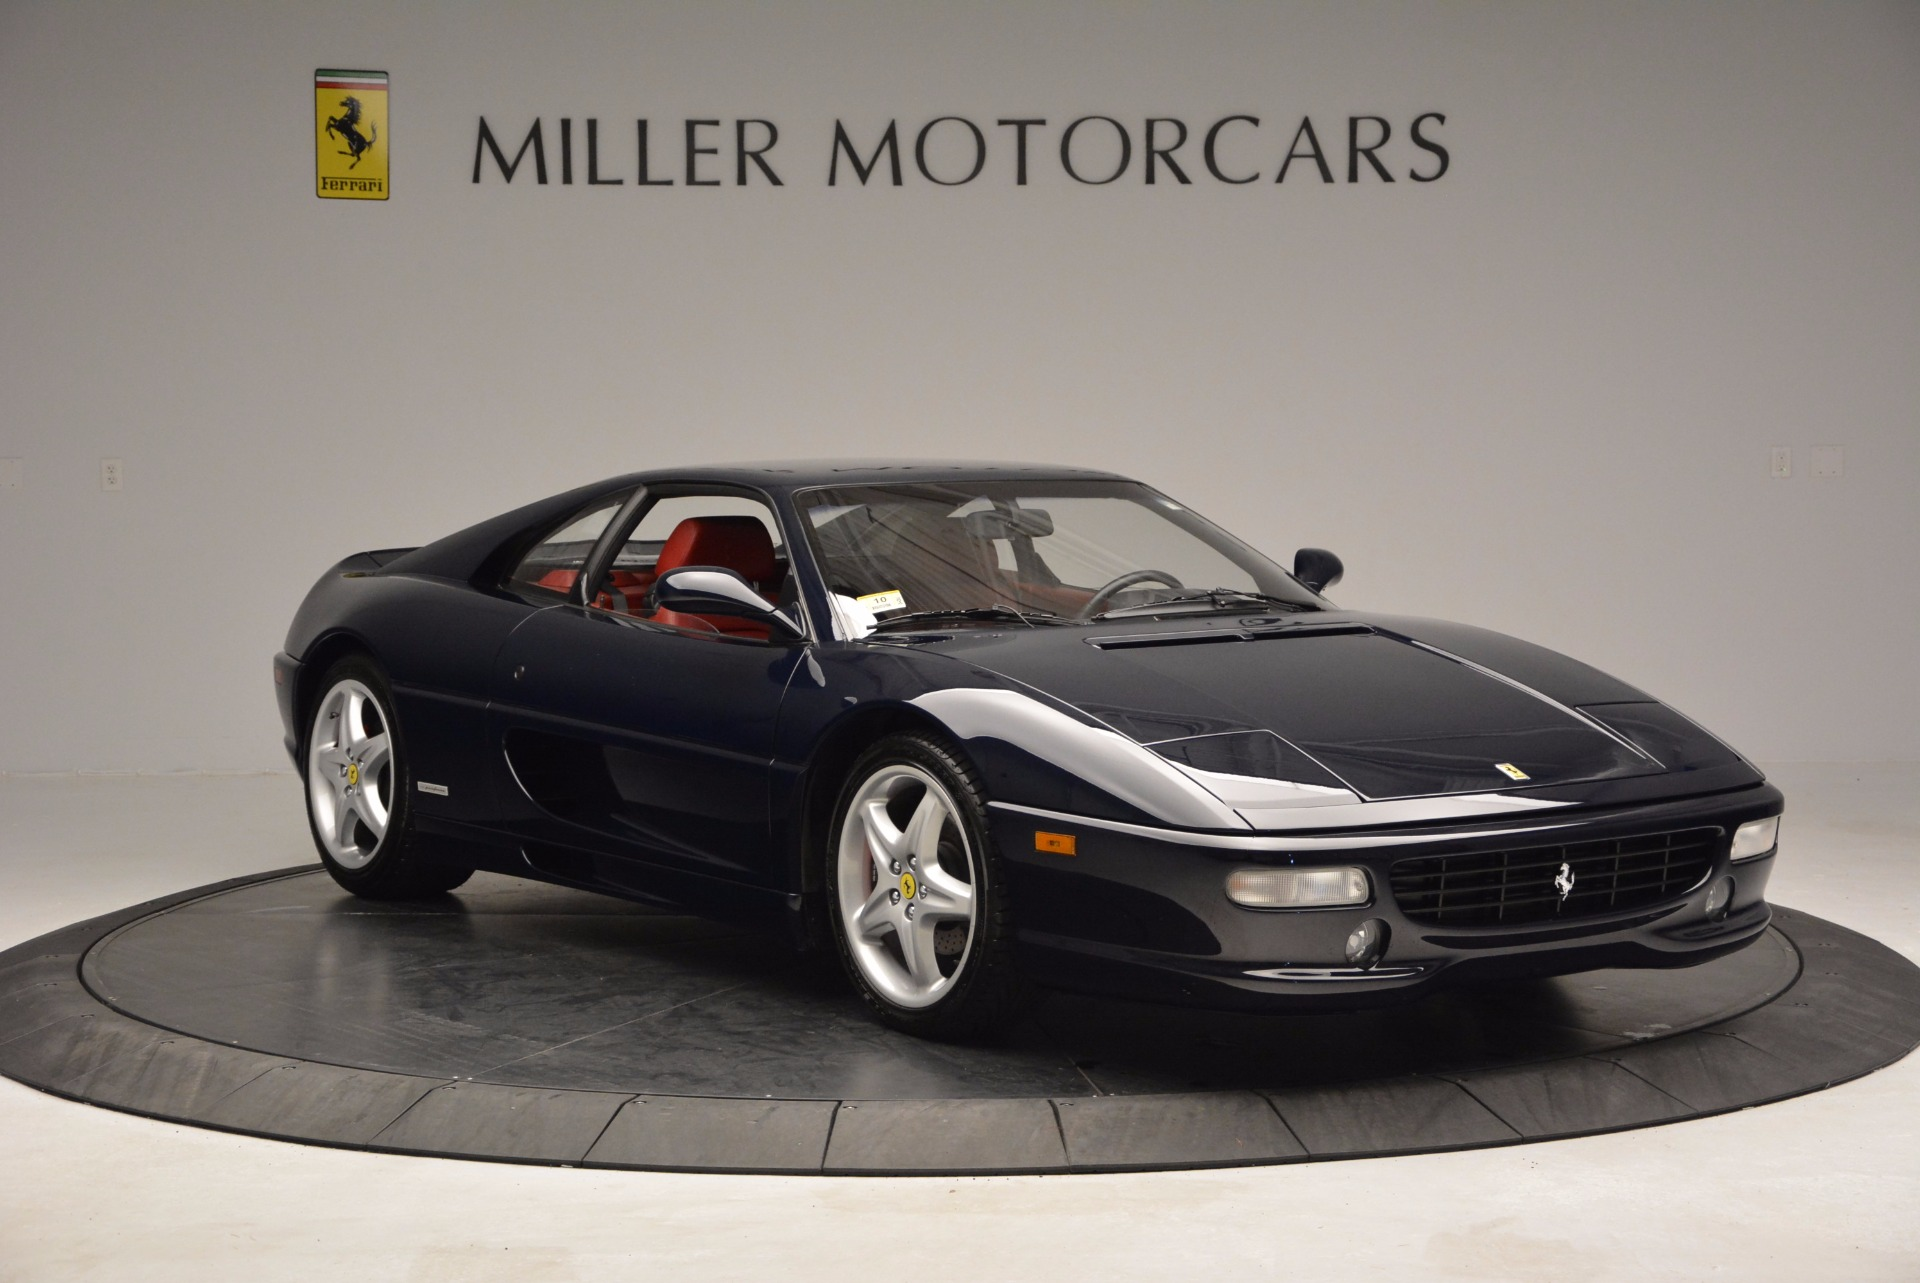 Used 1999 Ferrari 355 Berlinetta For Sale In Westport, CT 855_p12